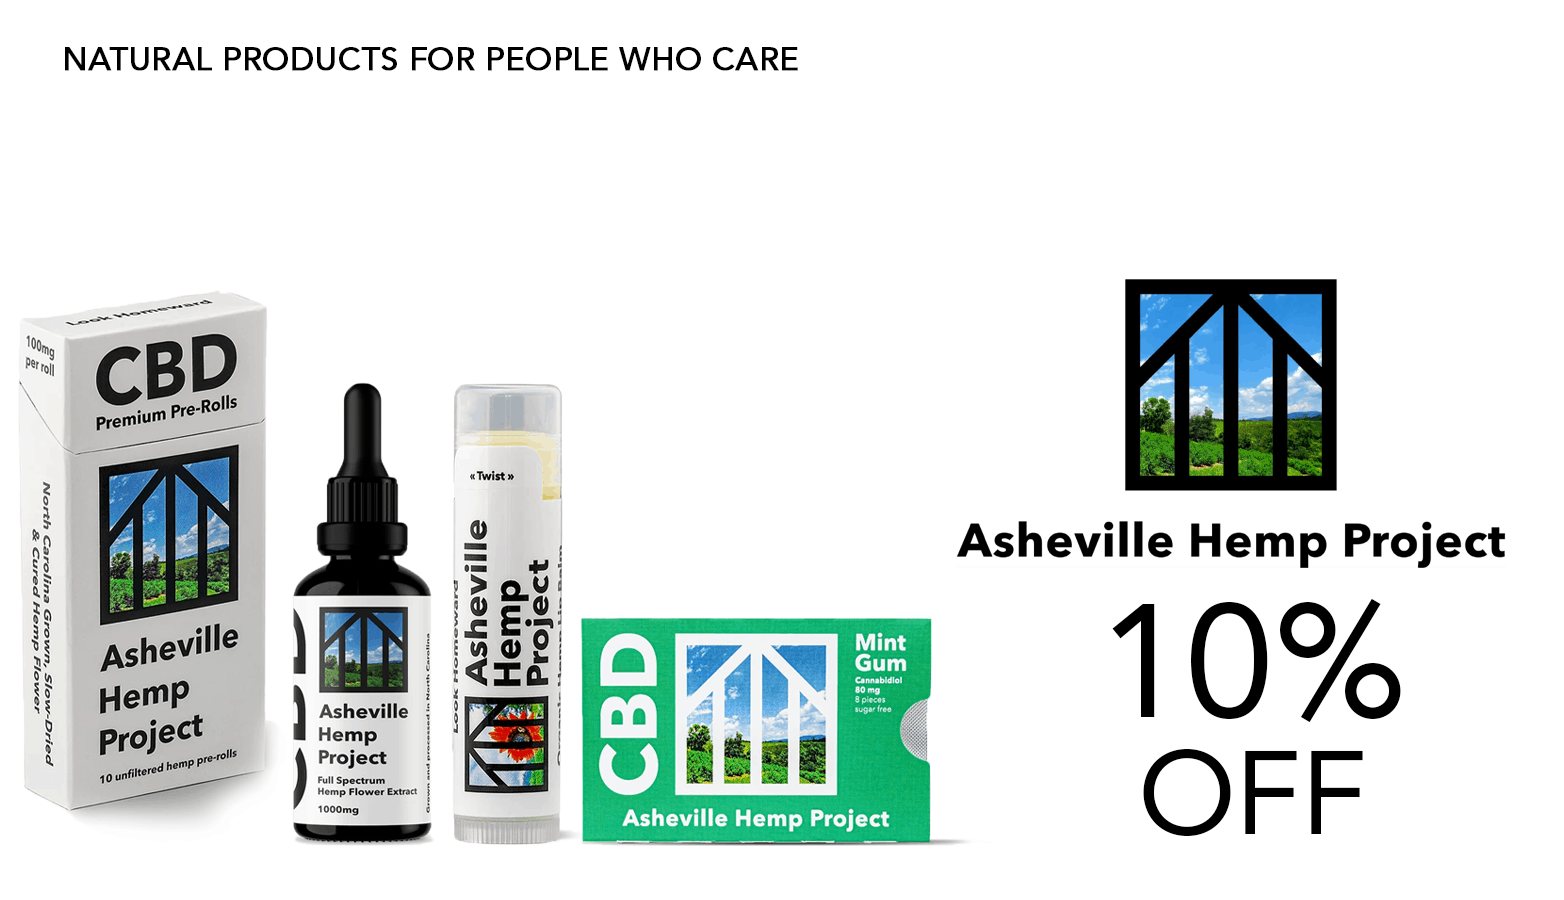 Asheville Hemp Project CBD Coupon Code Offer Website